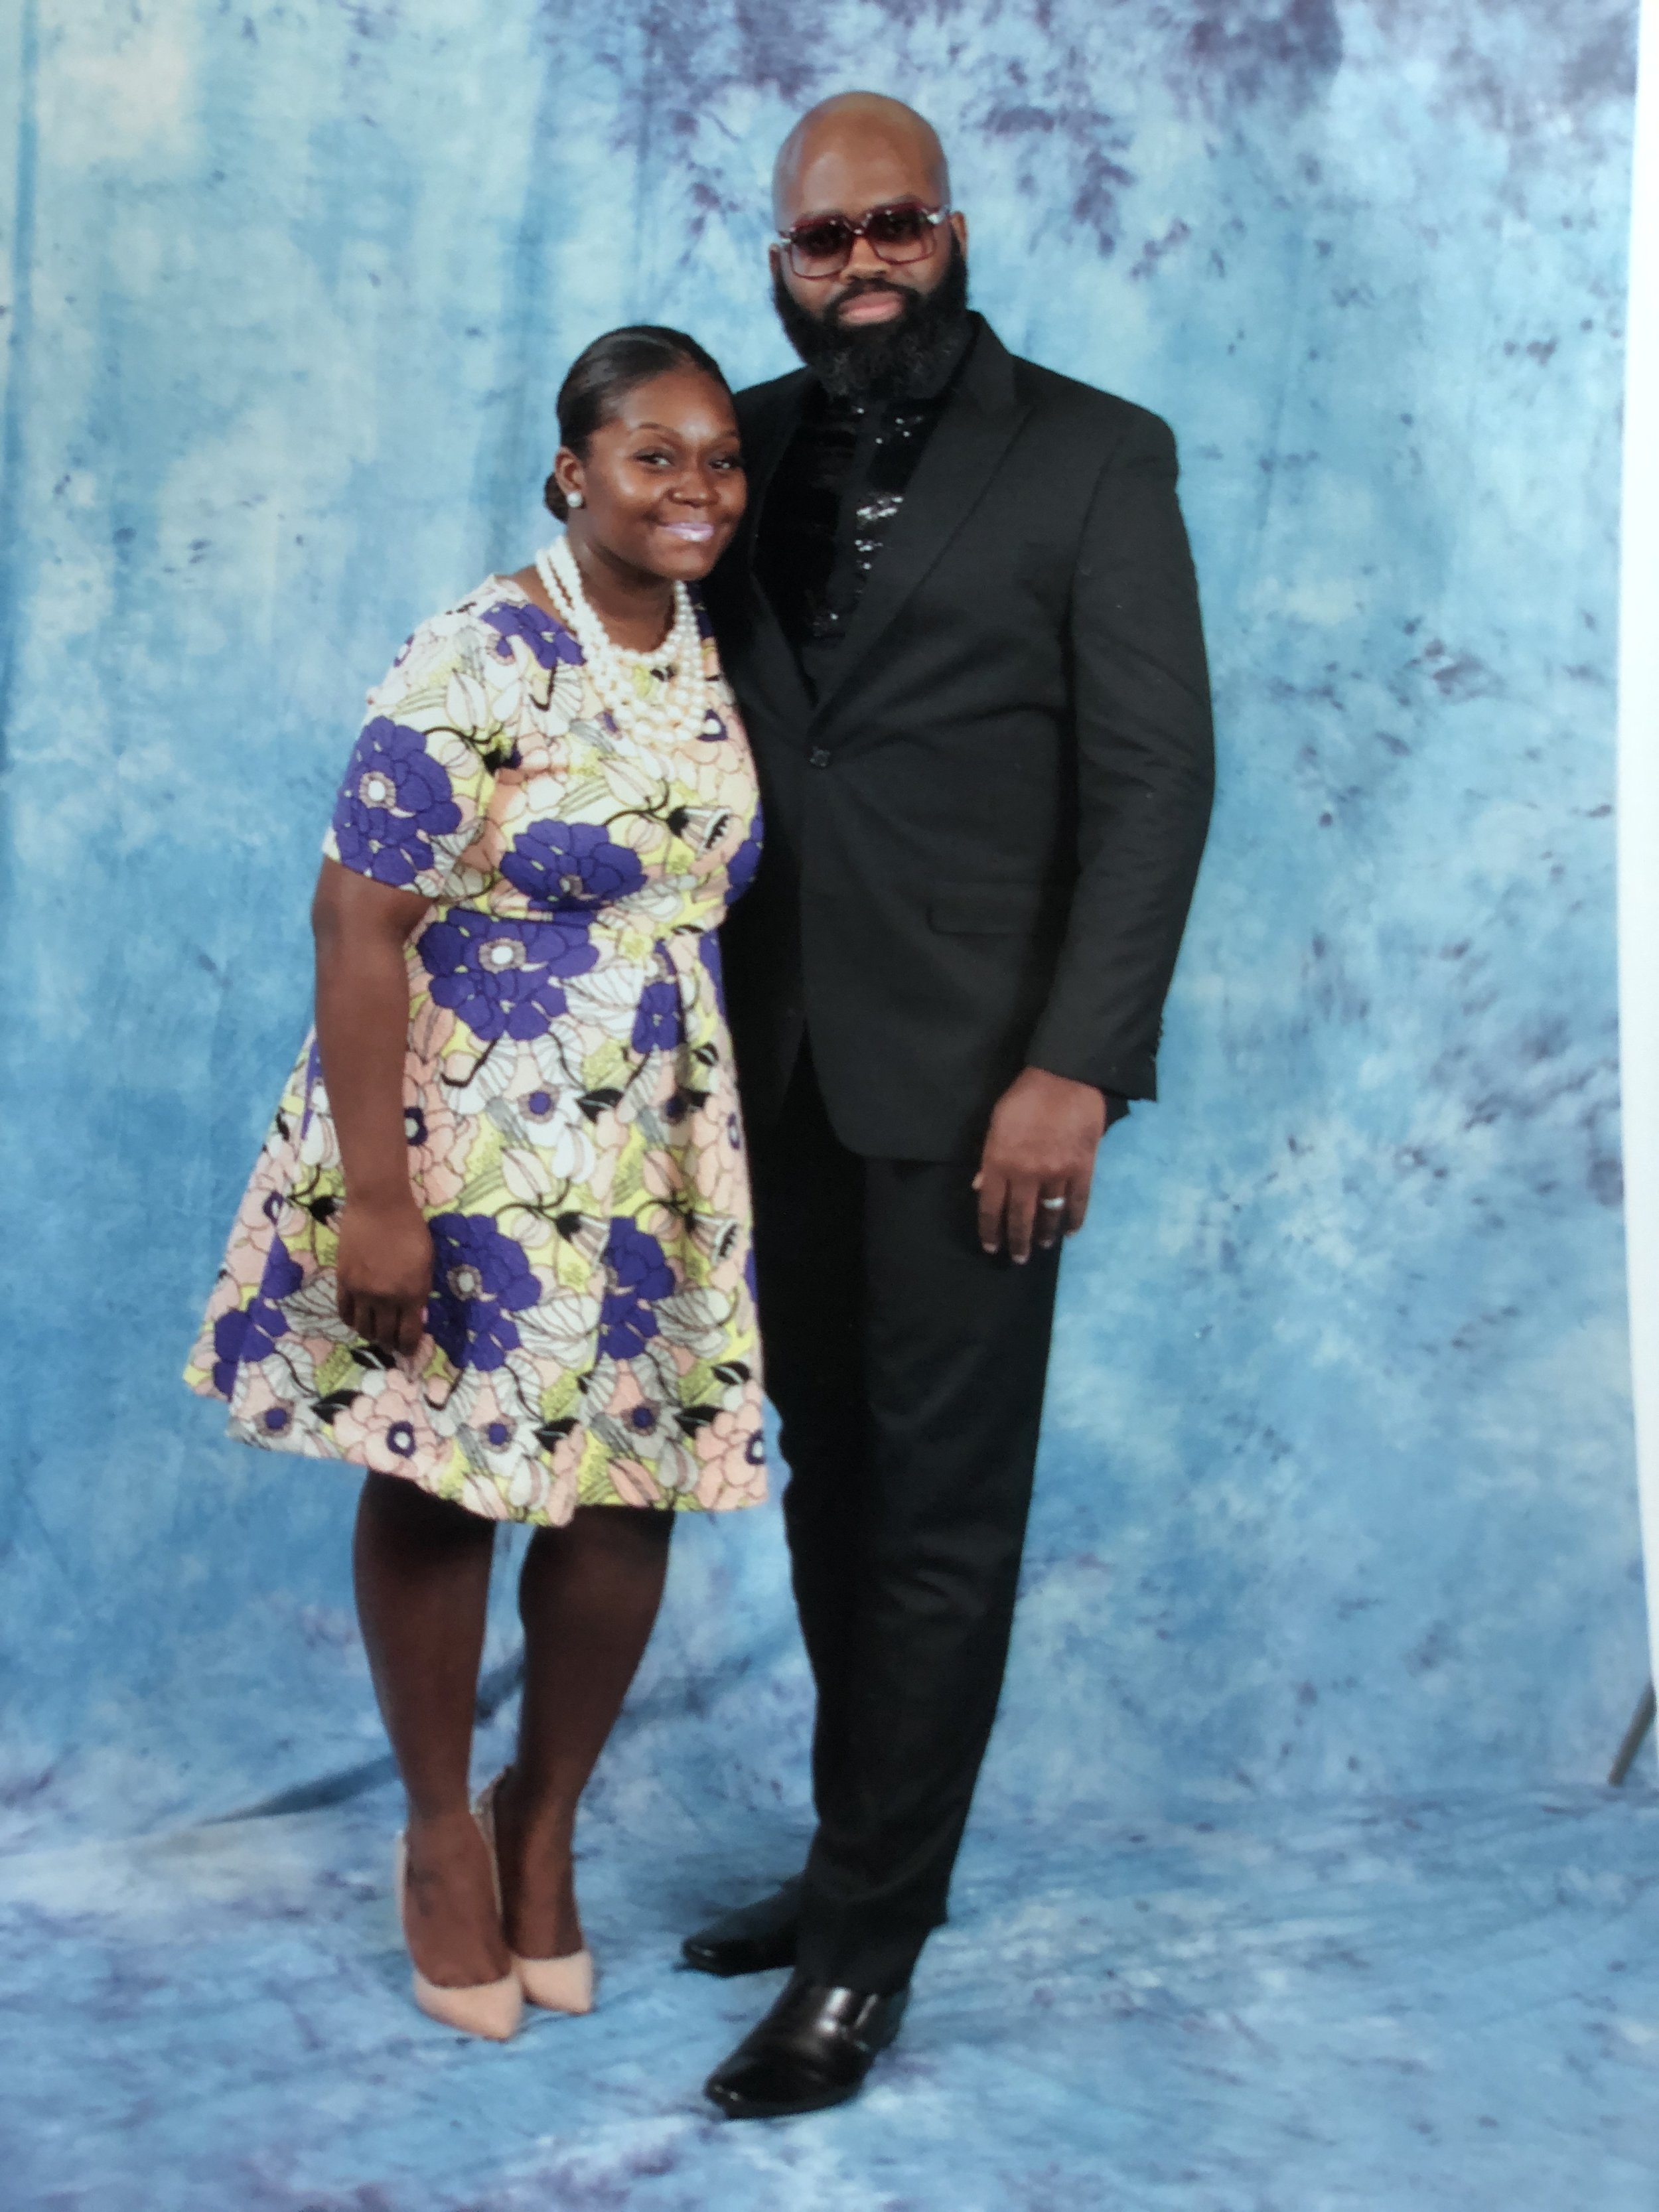 Wife Pearls…Meet My Covering! - Nettae has been with S'ken for over 10 years. We've courted for five